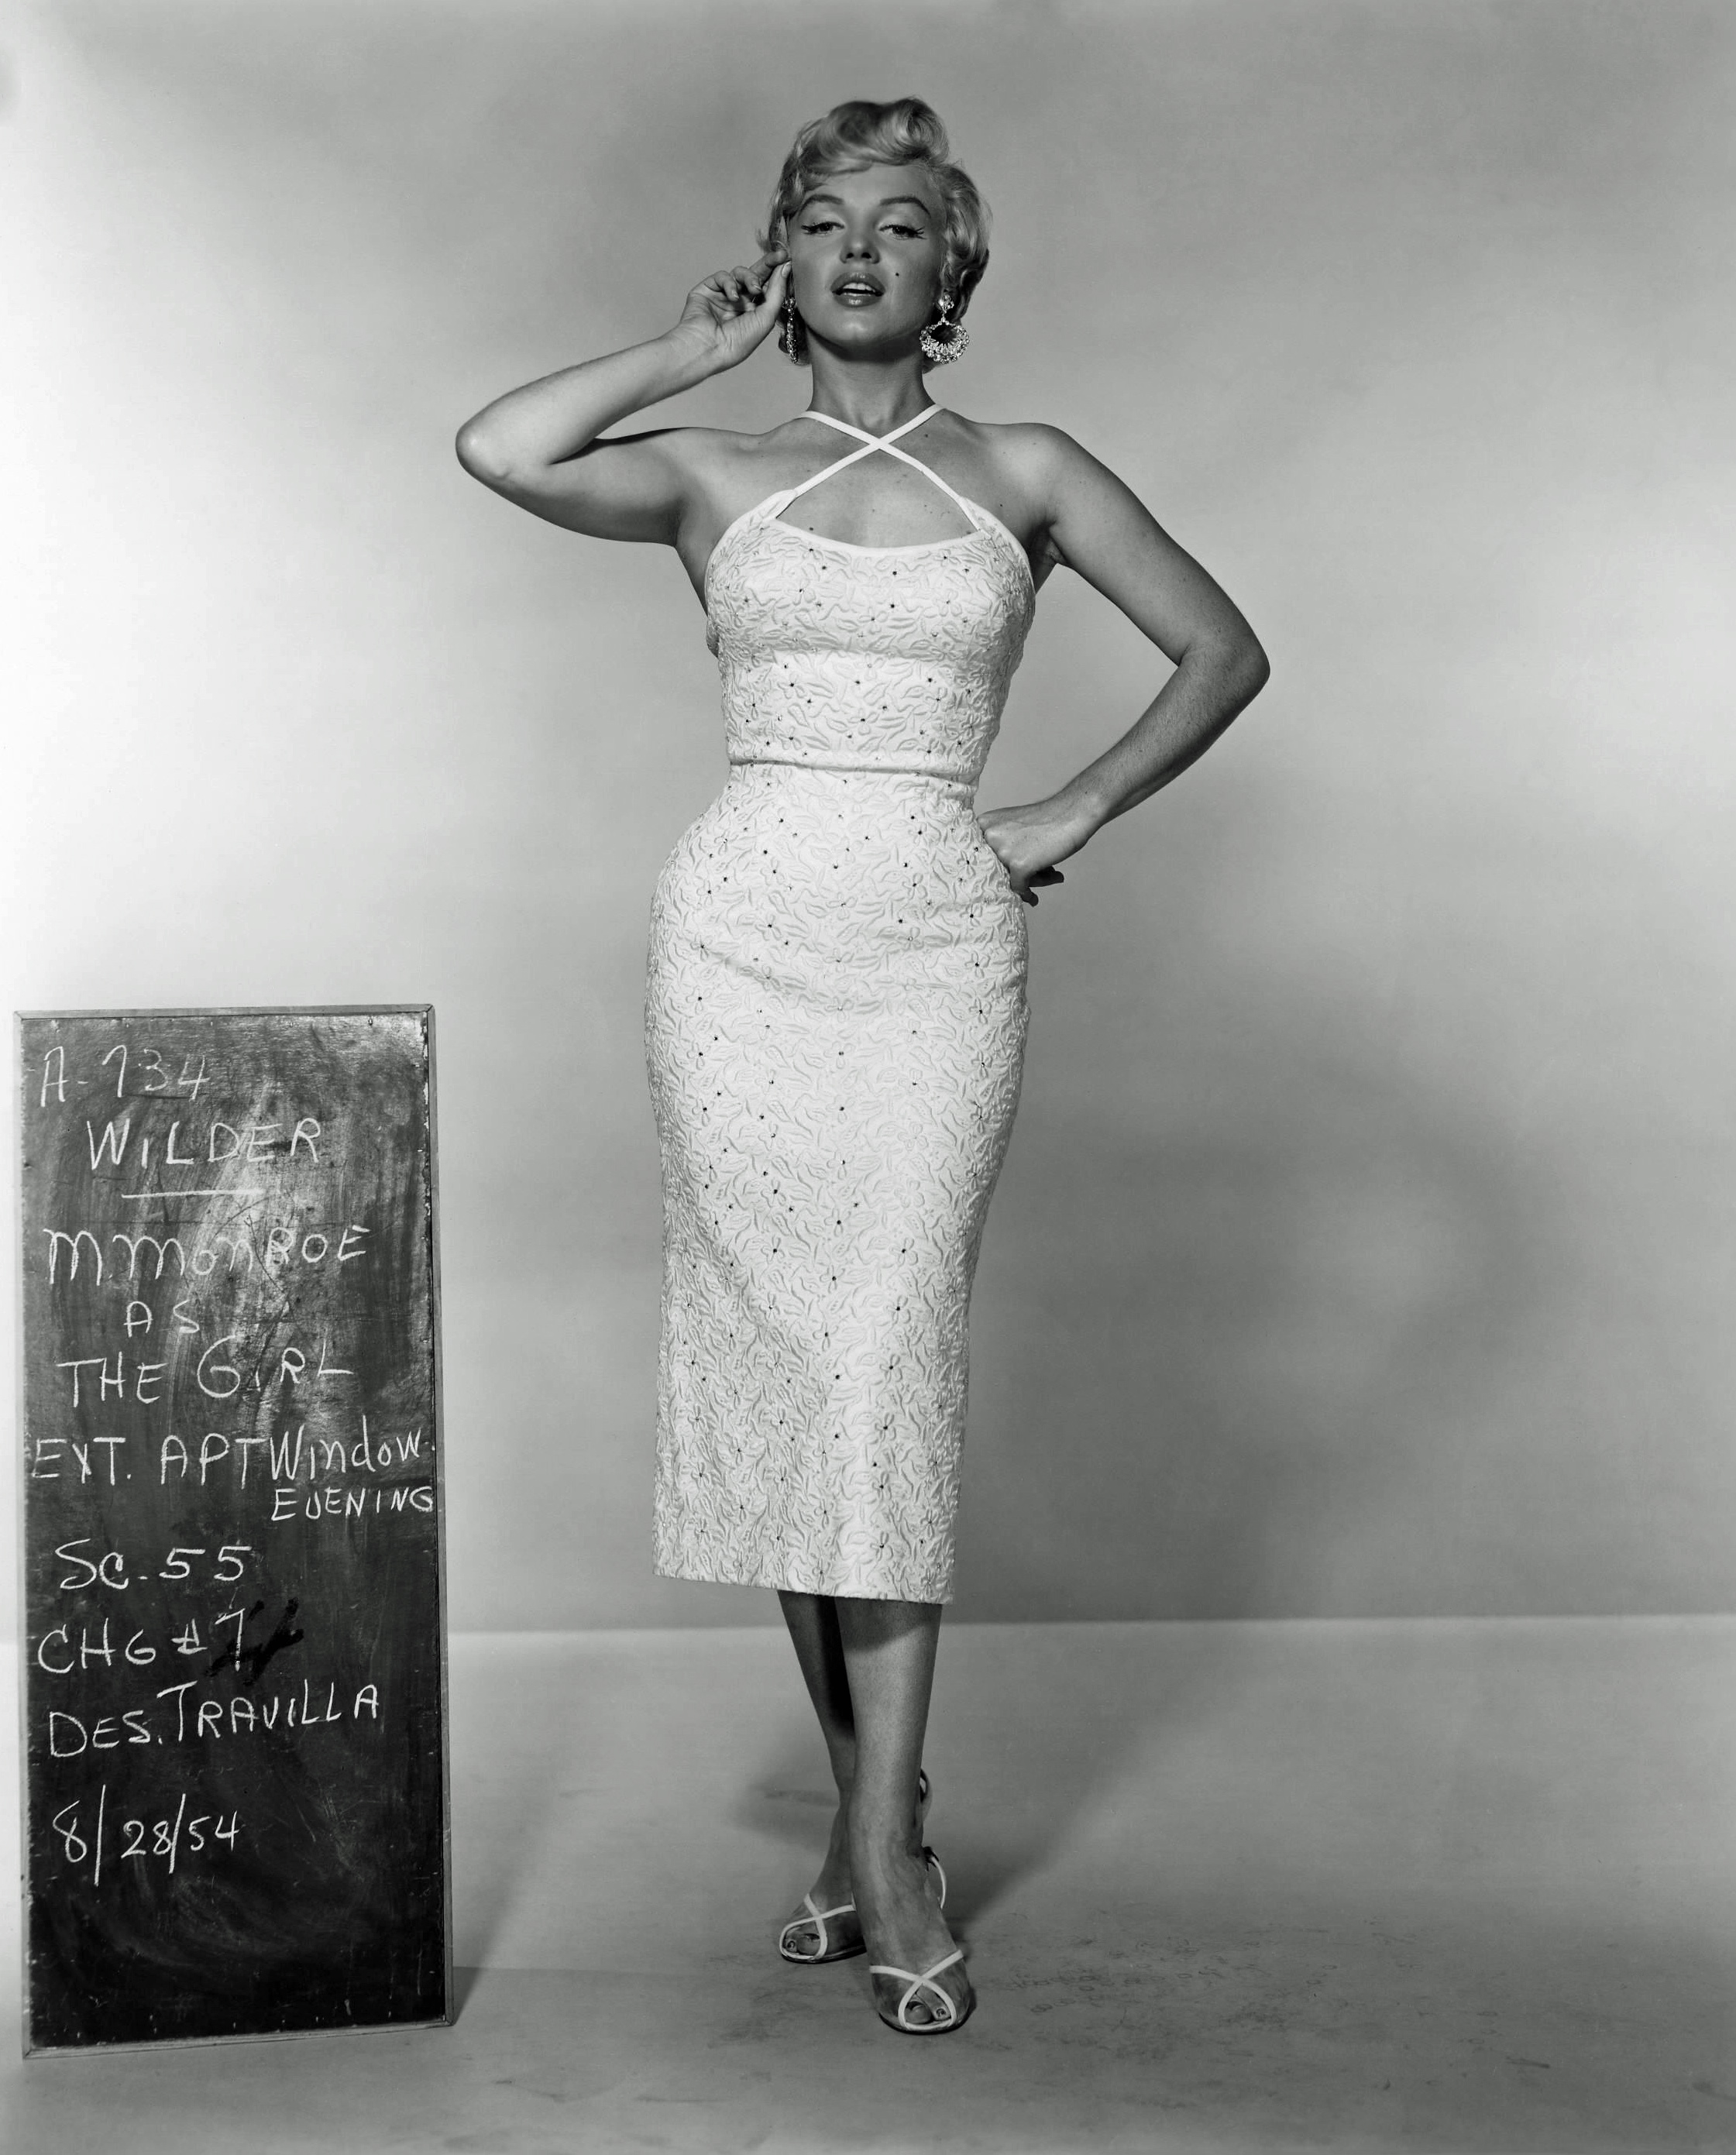 Marilyn Monroe Body Weight